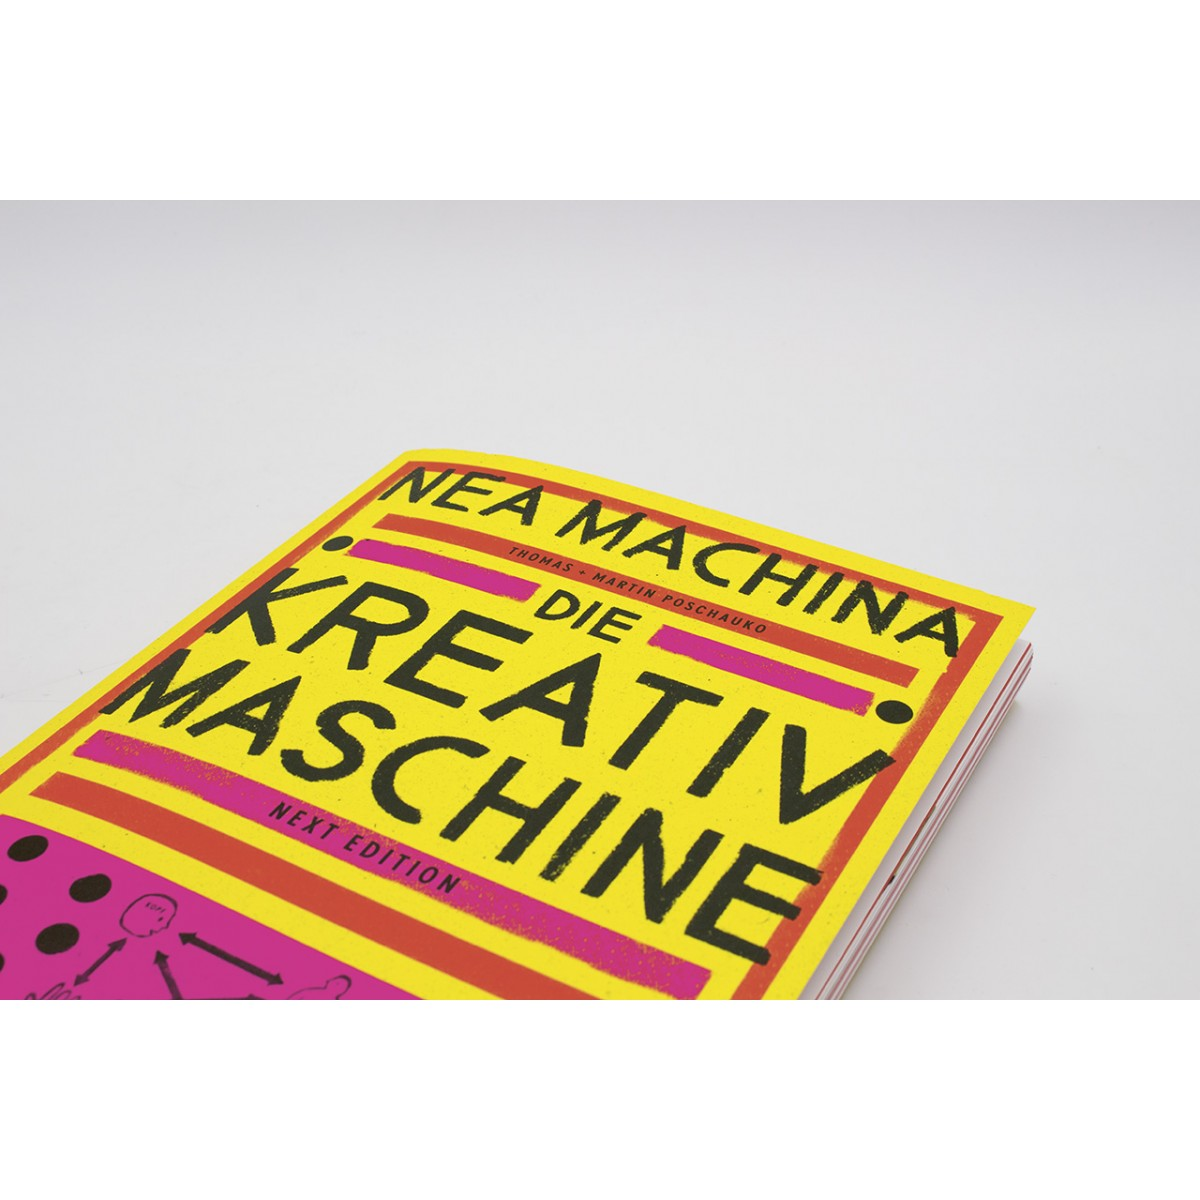 Thomas und Martin Poschauko »NEA MACHINA - Die Kreativmaschine. Next Edition.«